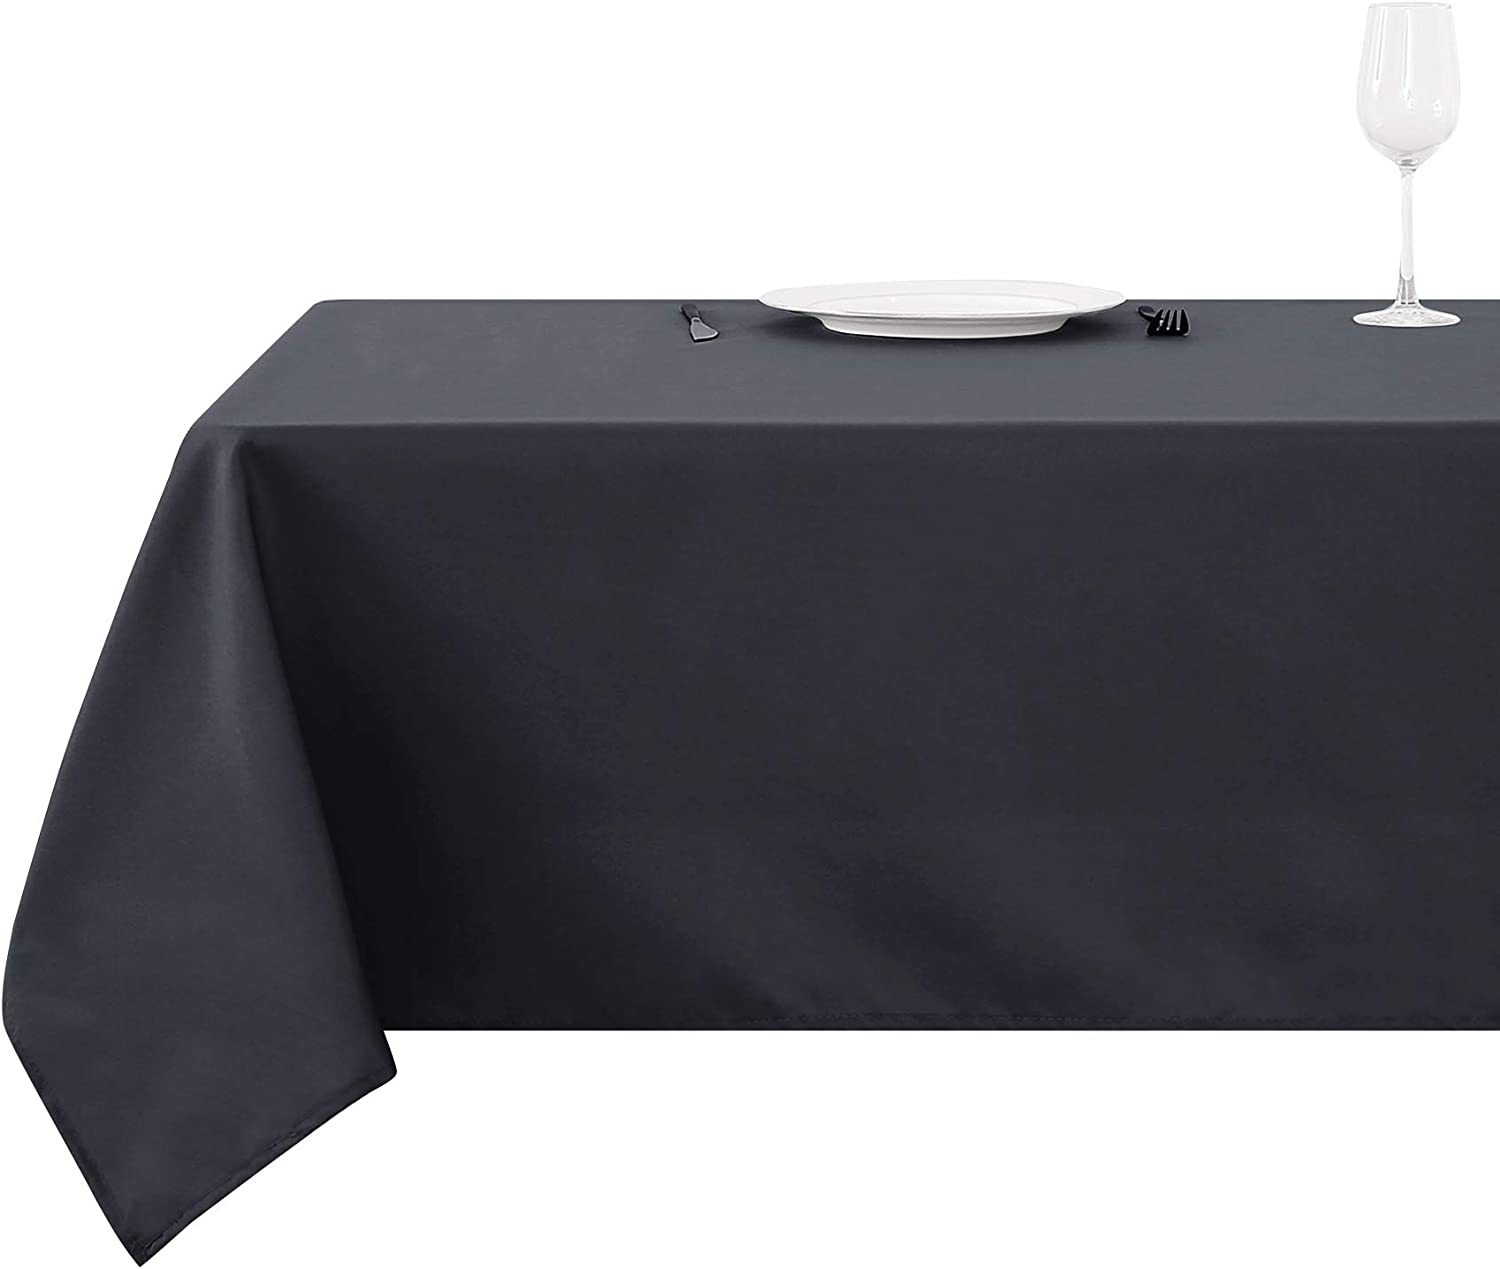 Deconovo Wrinkle Free Tablecloth Dust-Proof Water Resistant Tablecloths for Dining Room Table 54x102 Inch,Dark Grey